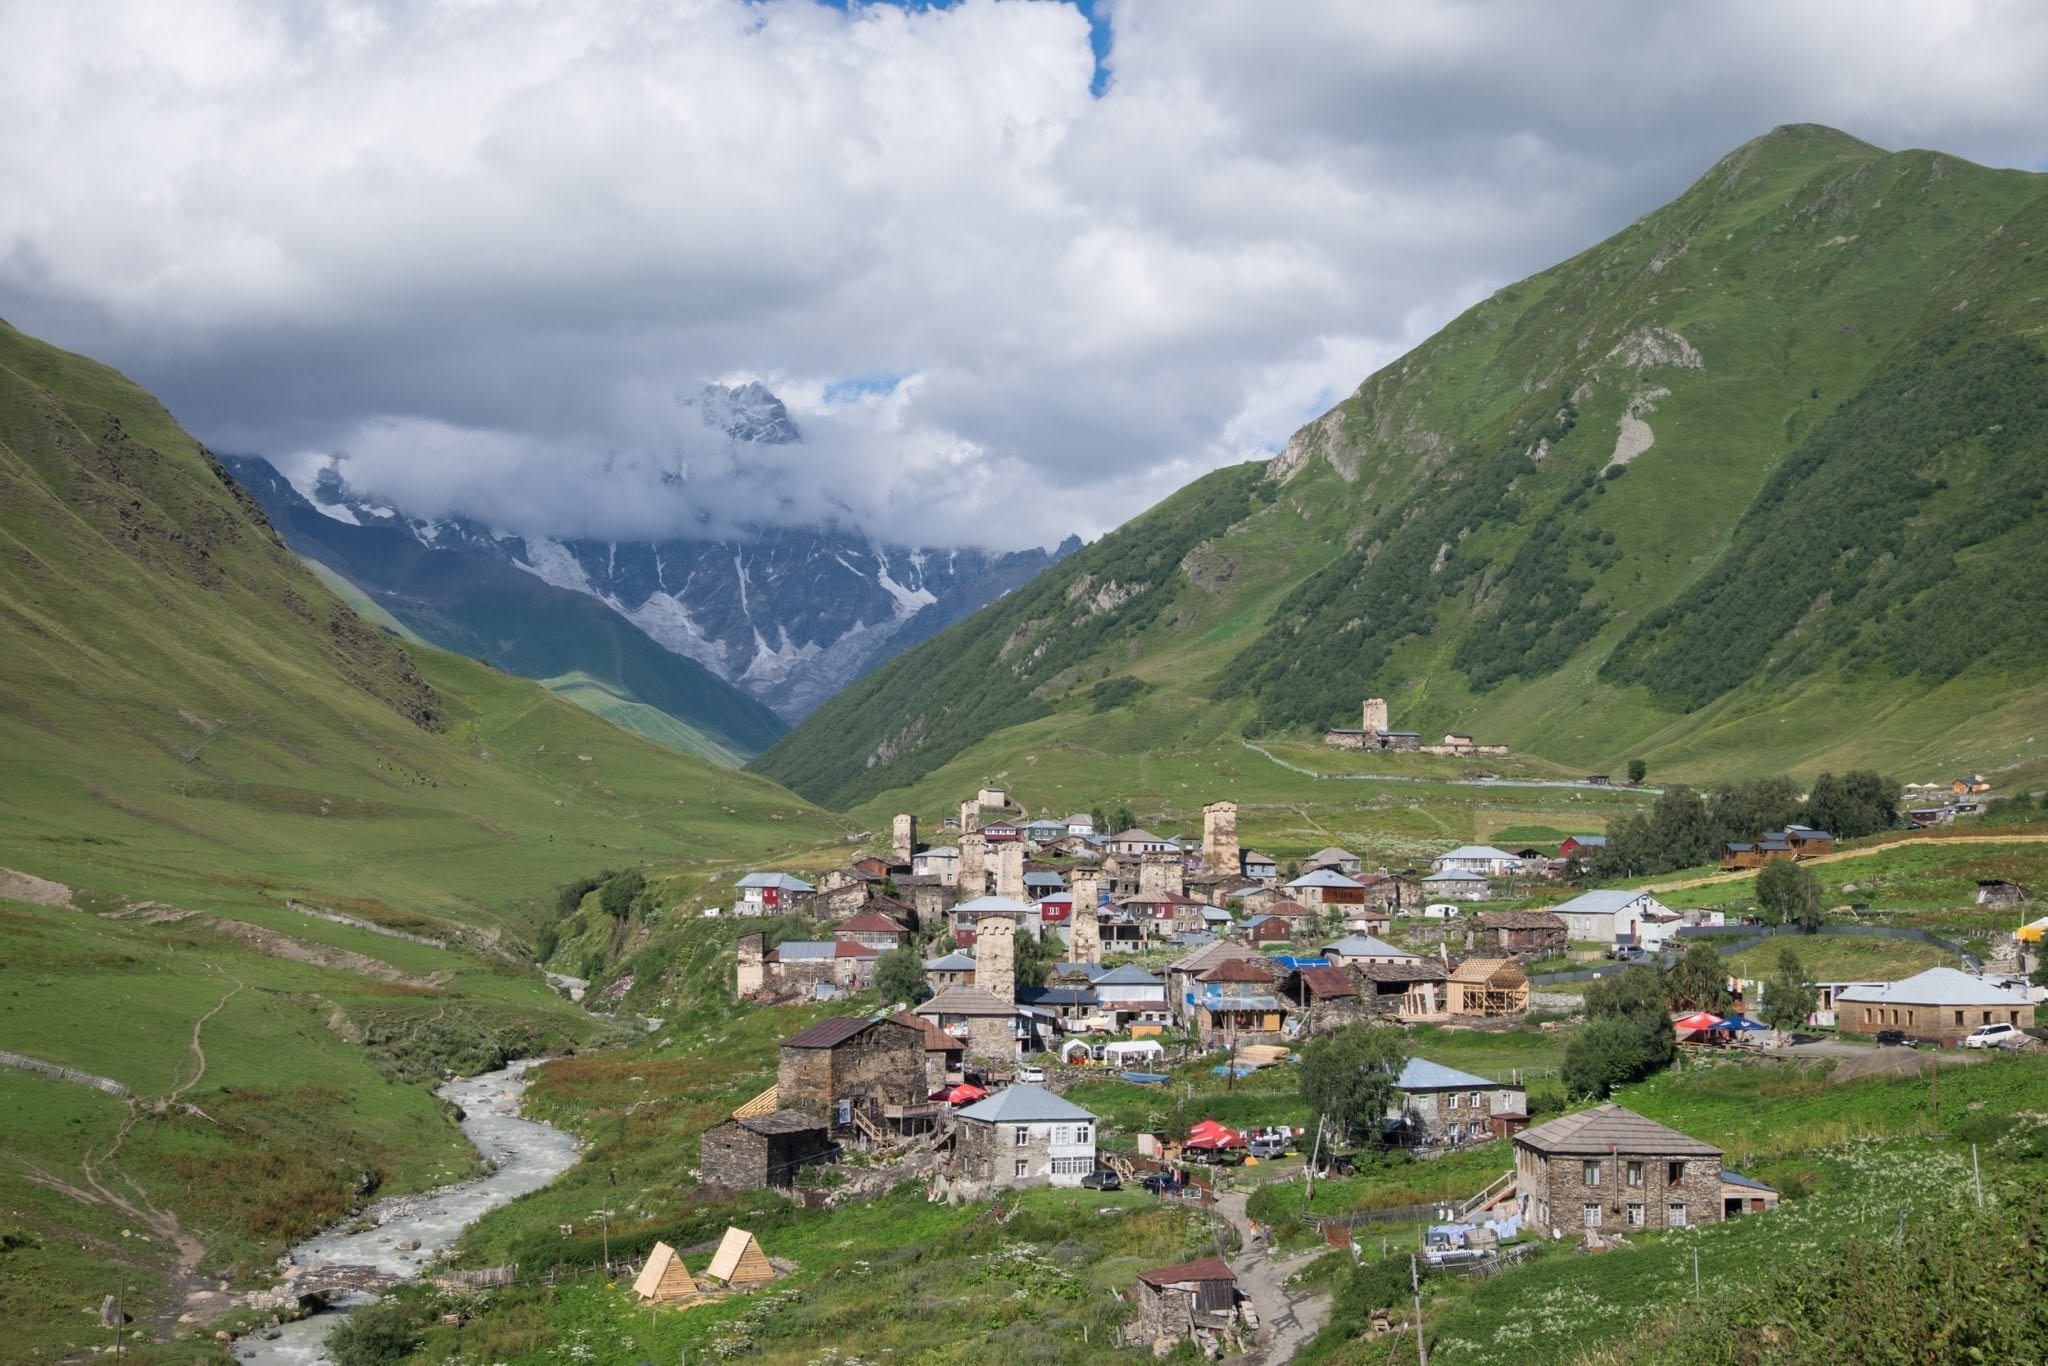 A distance view of Ushguli, with the stone towers of the village towering over the green landscape but not the surrounding green mountains.